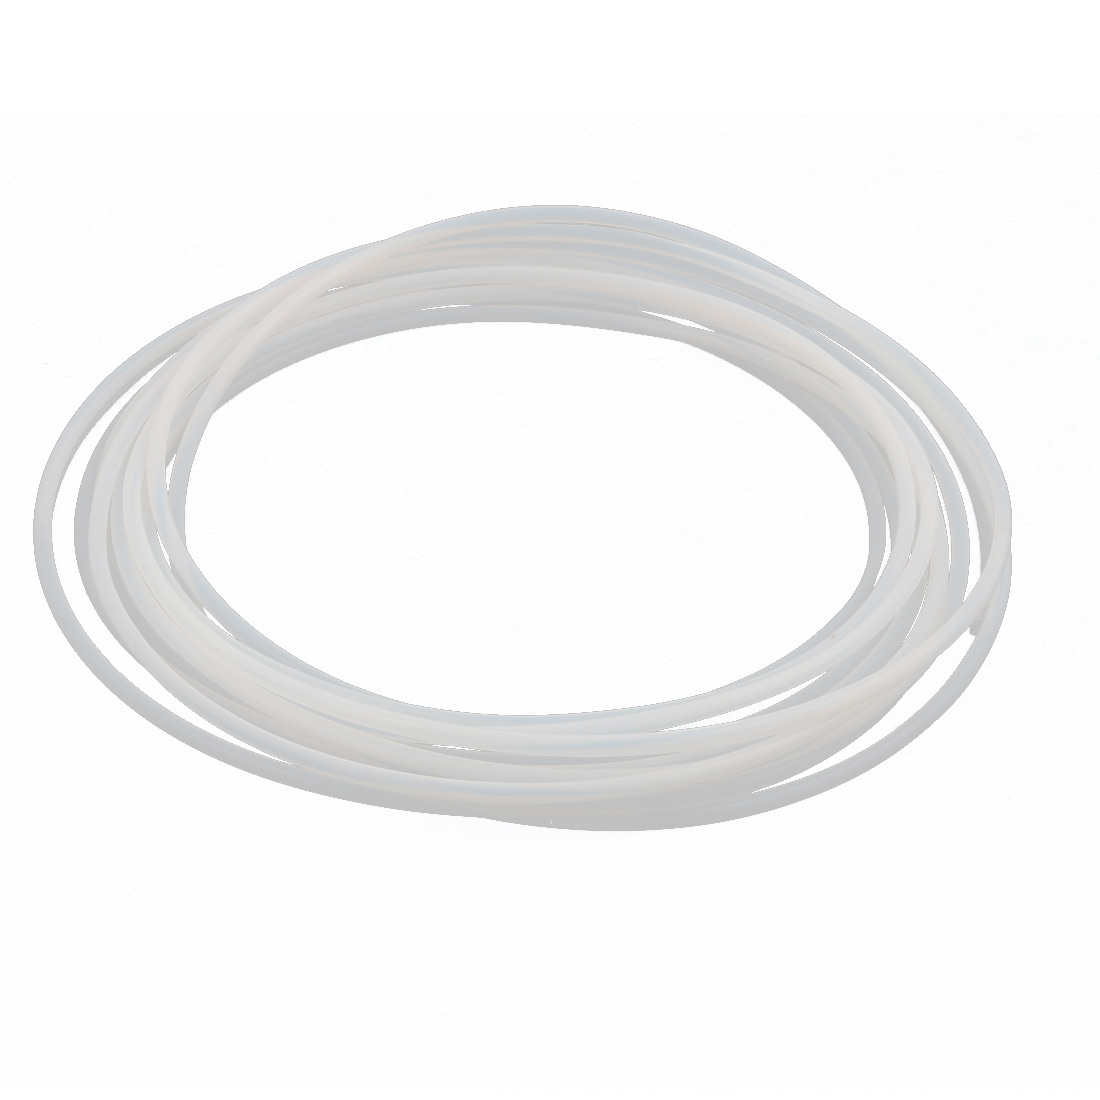 3mmx3.4mm PTFE Resistant High Temperature Transparent Tubing 5Meters 16.4Ft